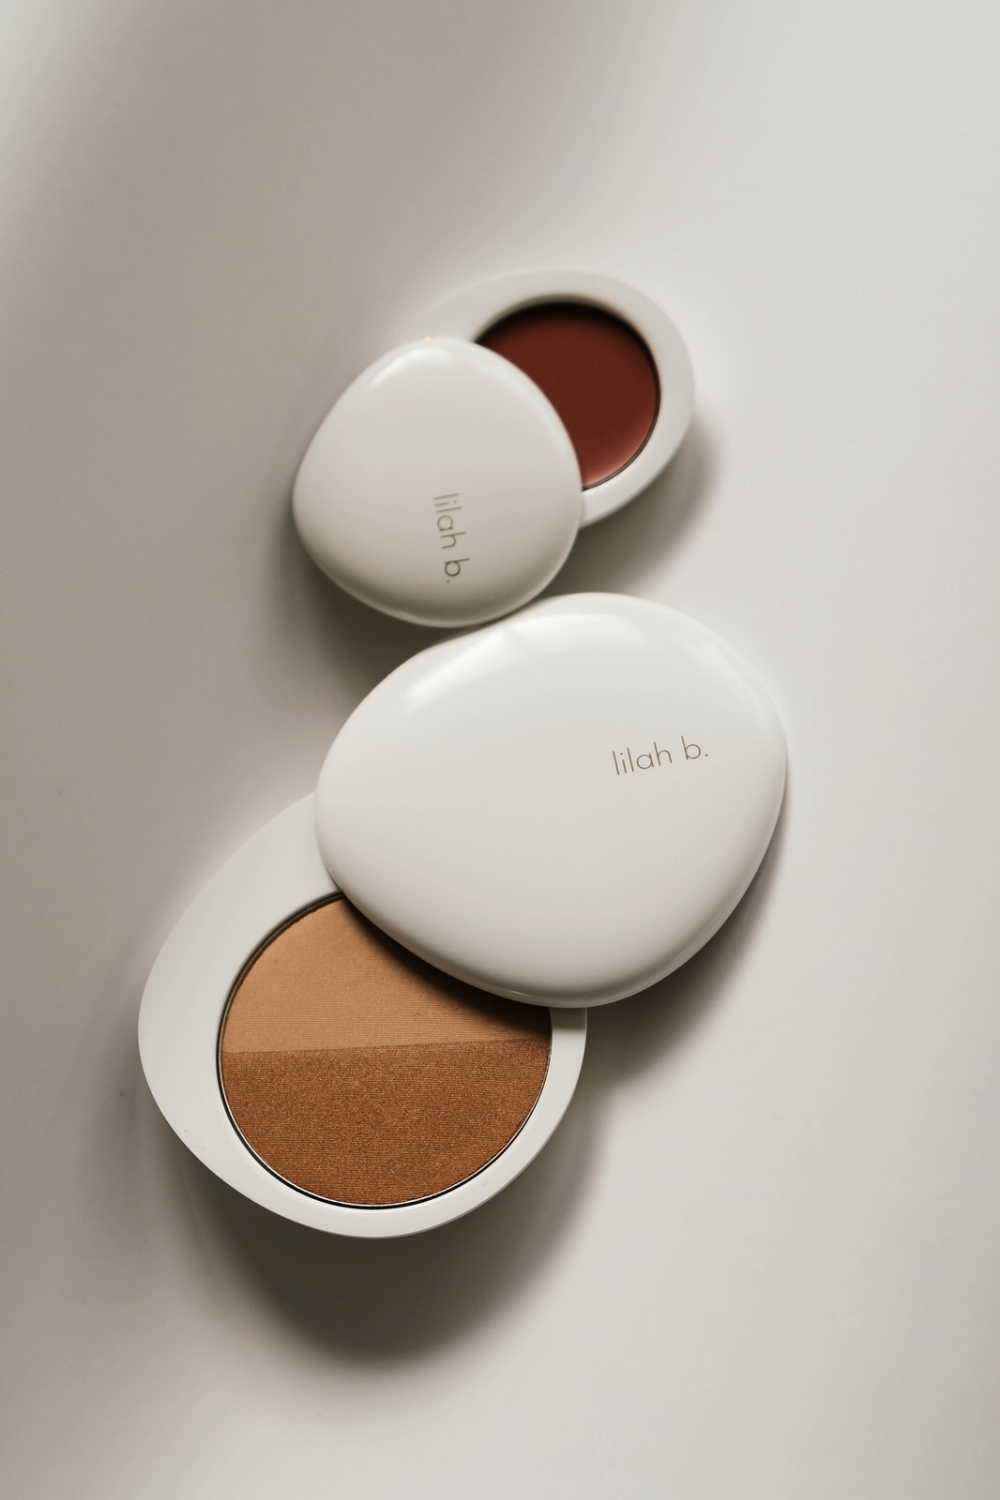 This Luxurious Cruelty Free Makeup Is Now in NZ — Demure